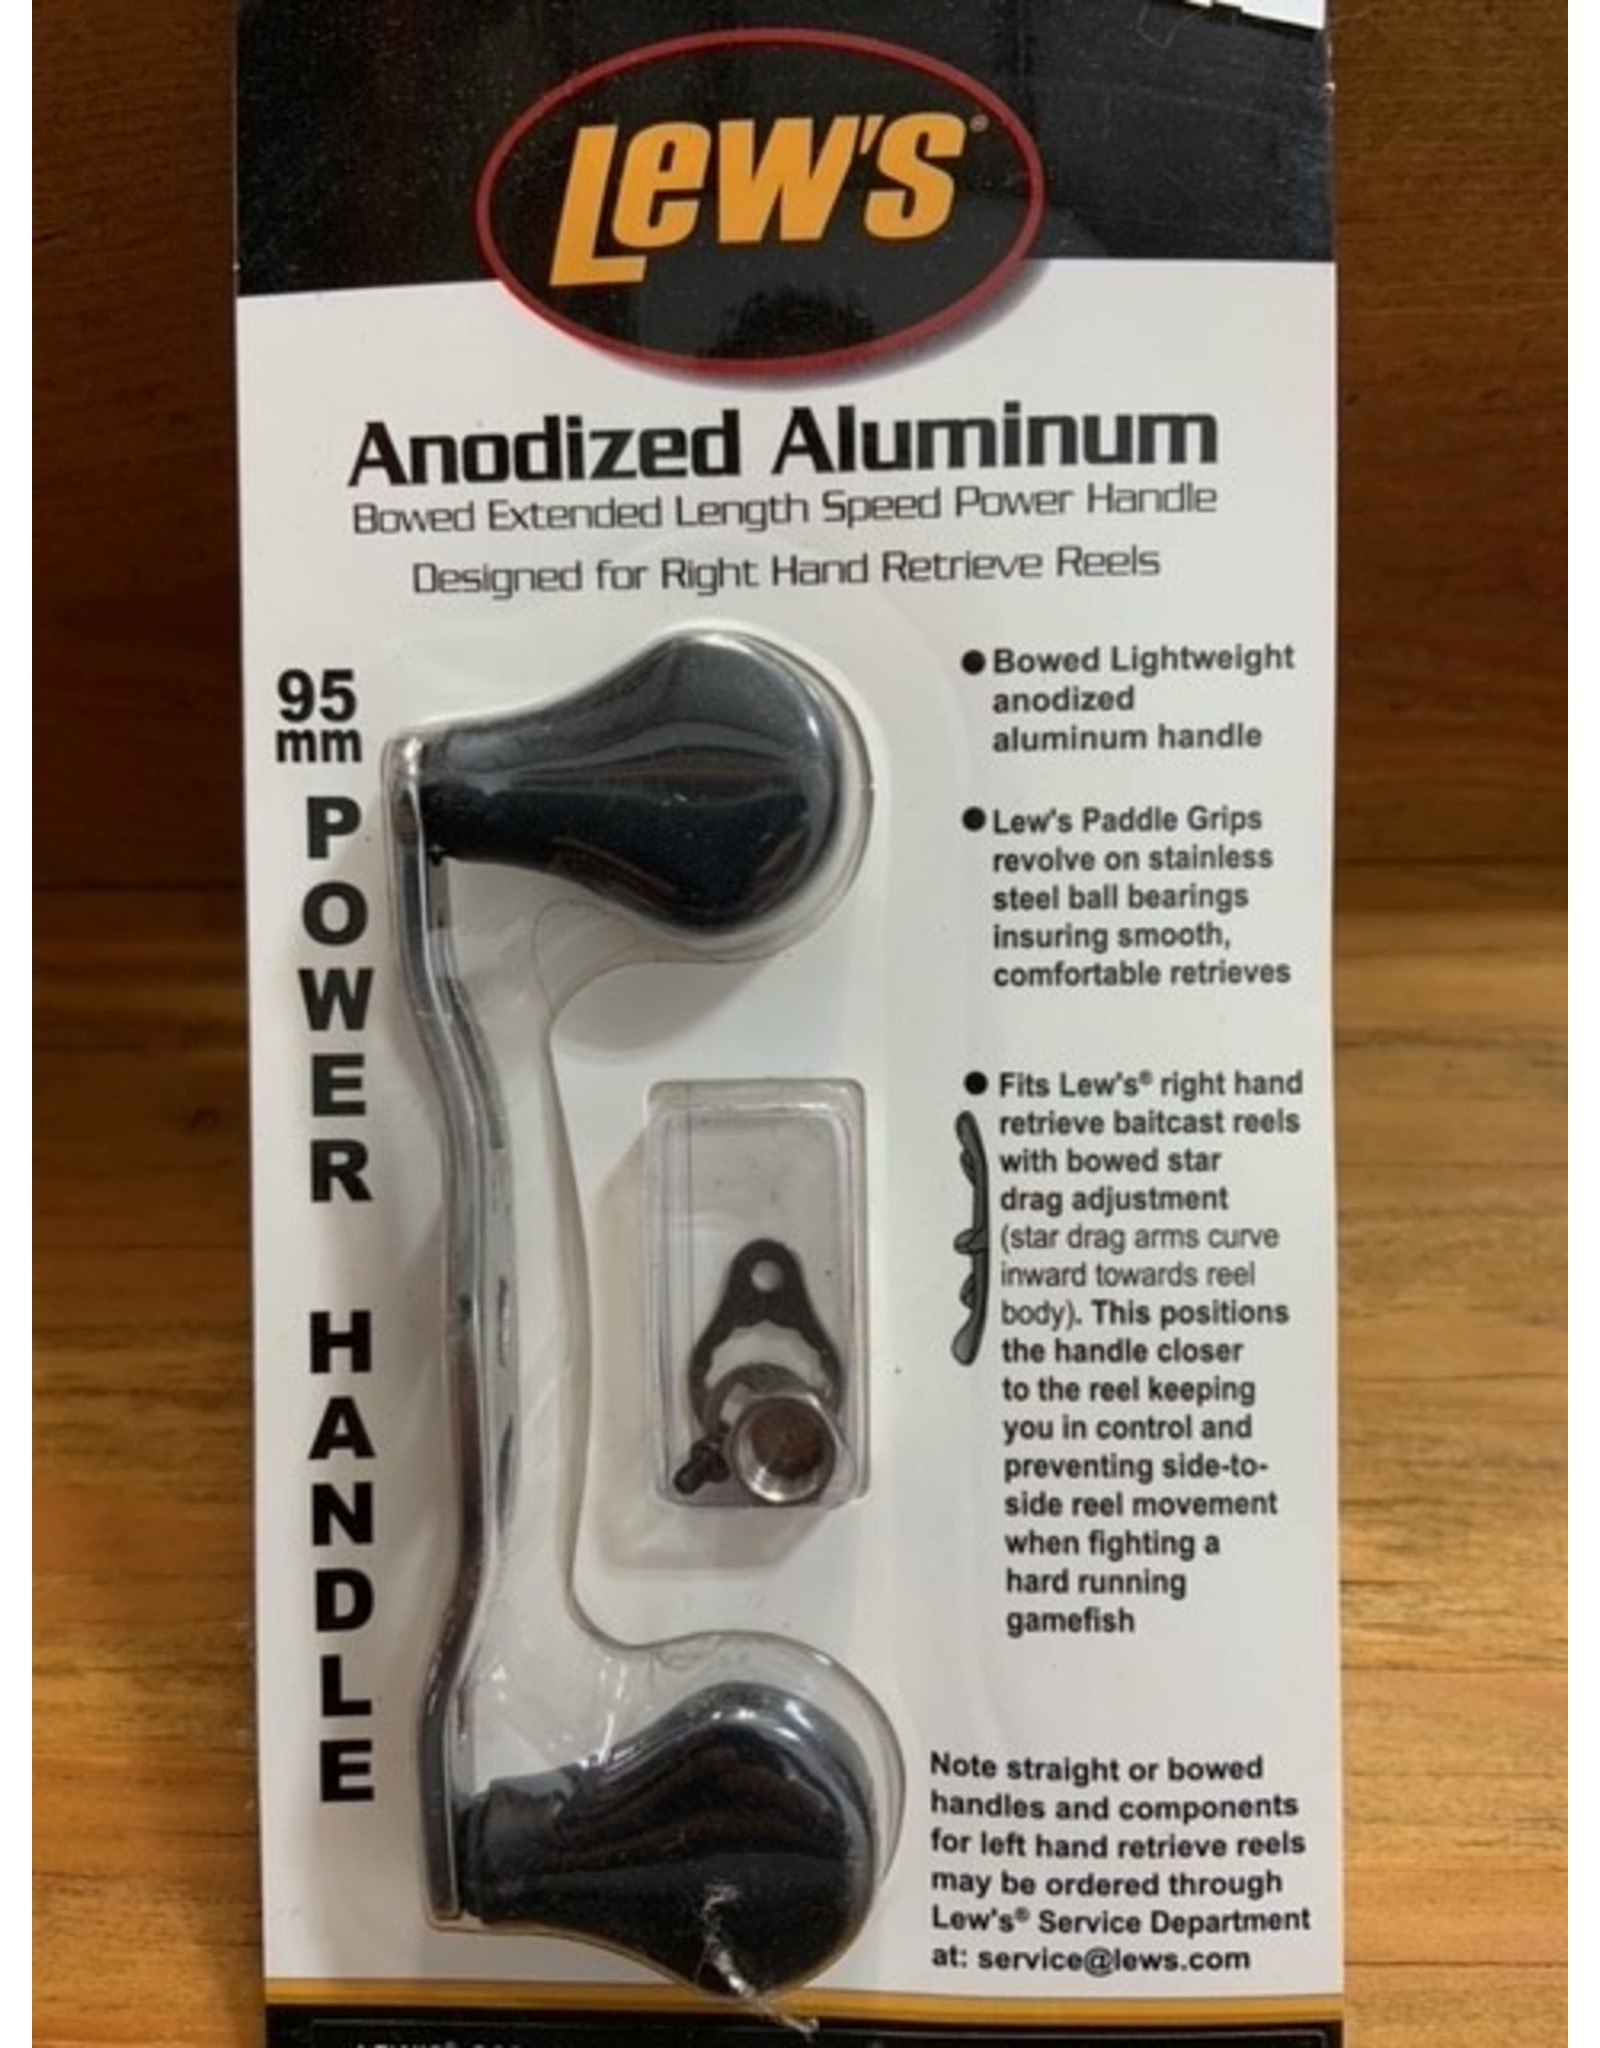 Lew's LEW'S ANODIZED ALUM. BOWED EXTENDED LENGTH POWER HANDLE